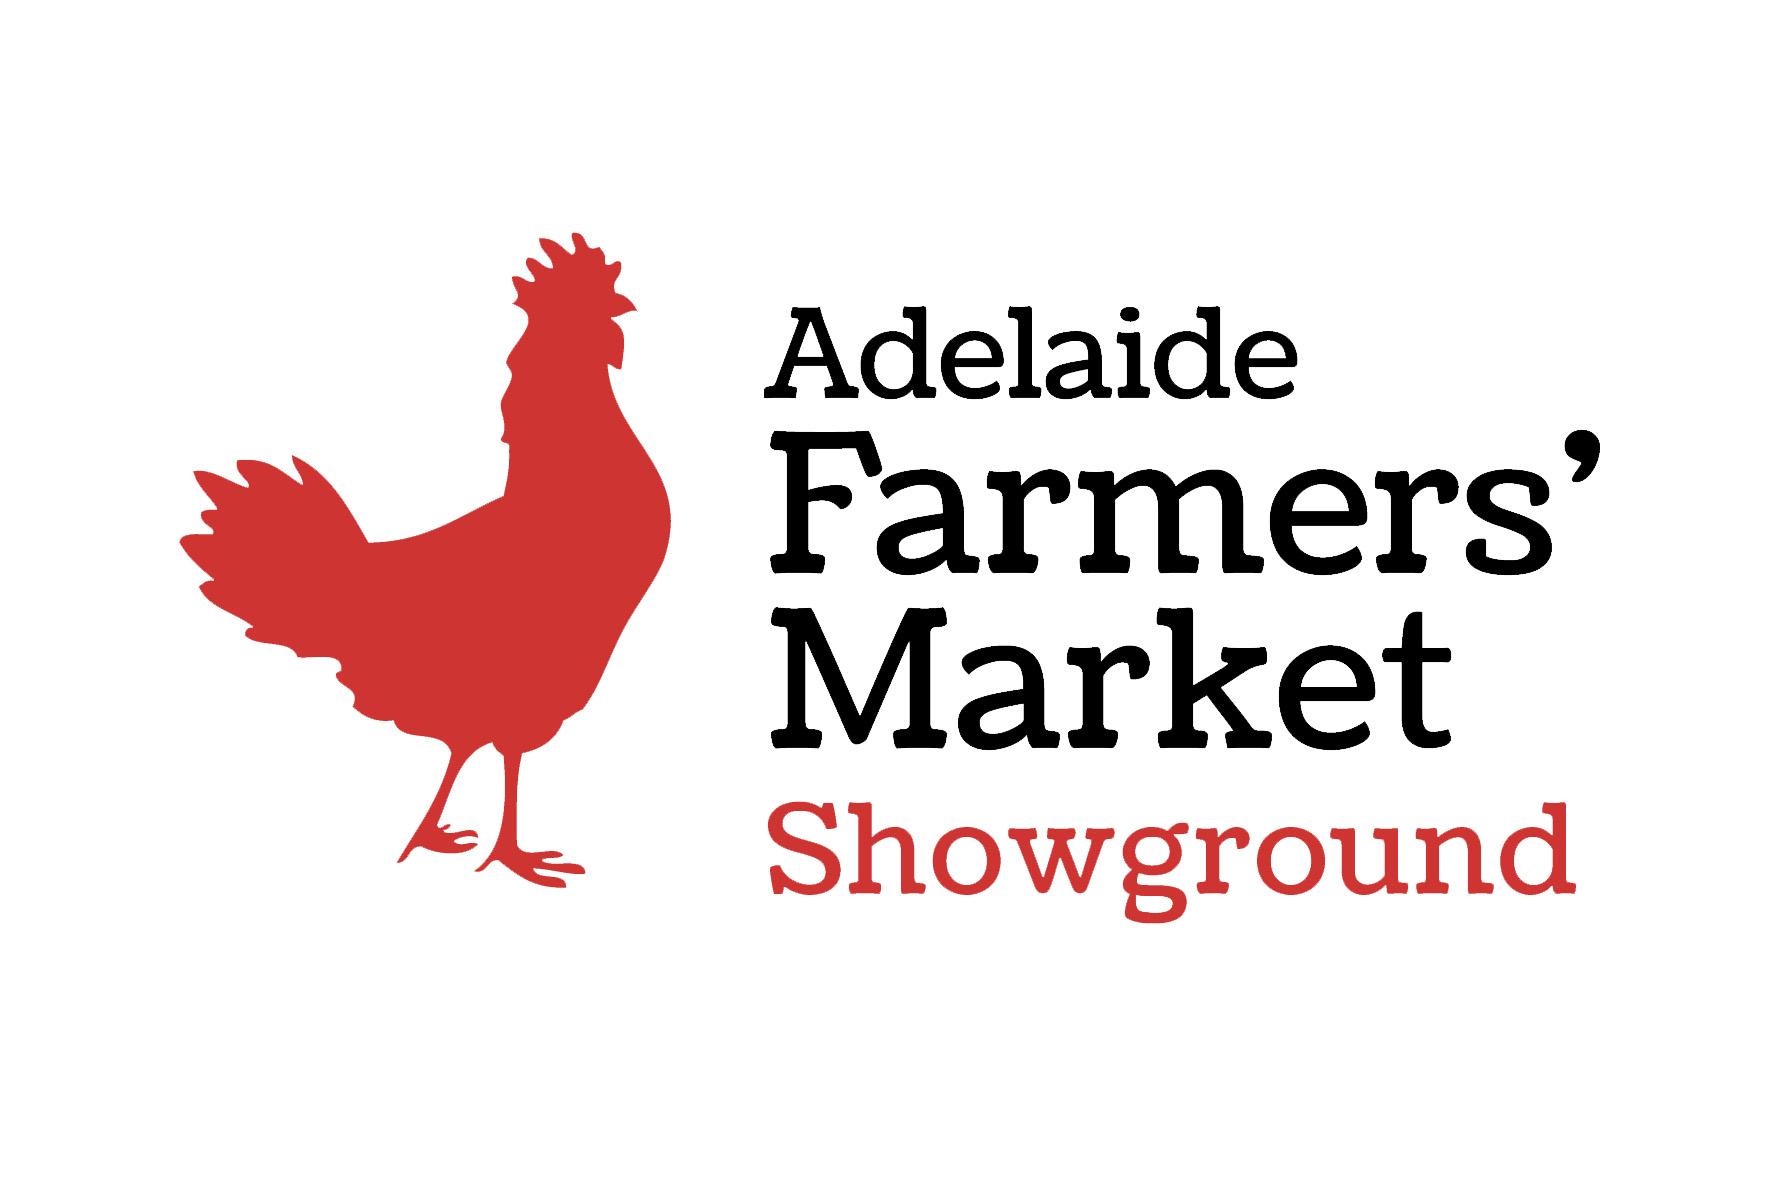 Adelaide Farmers Market Showground